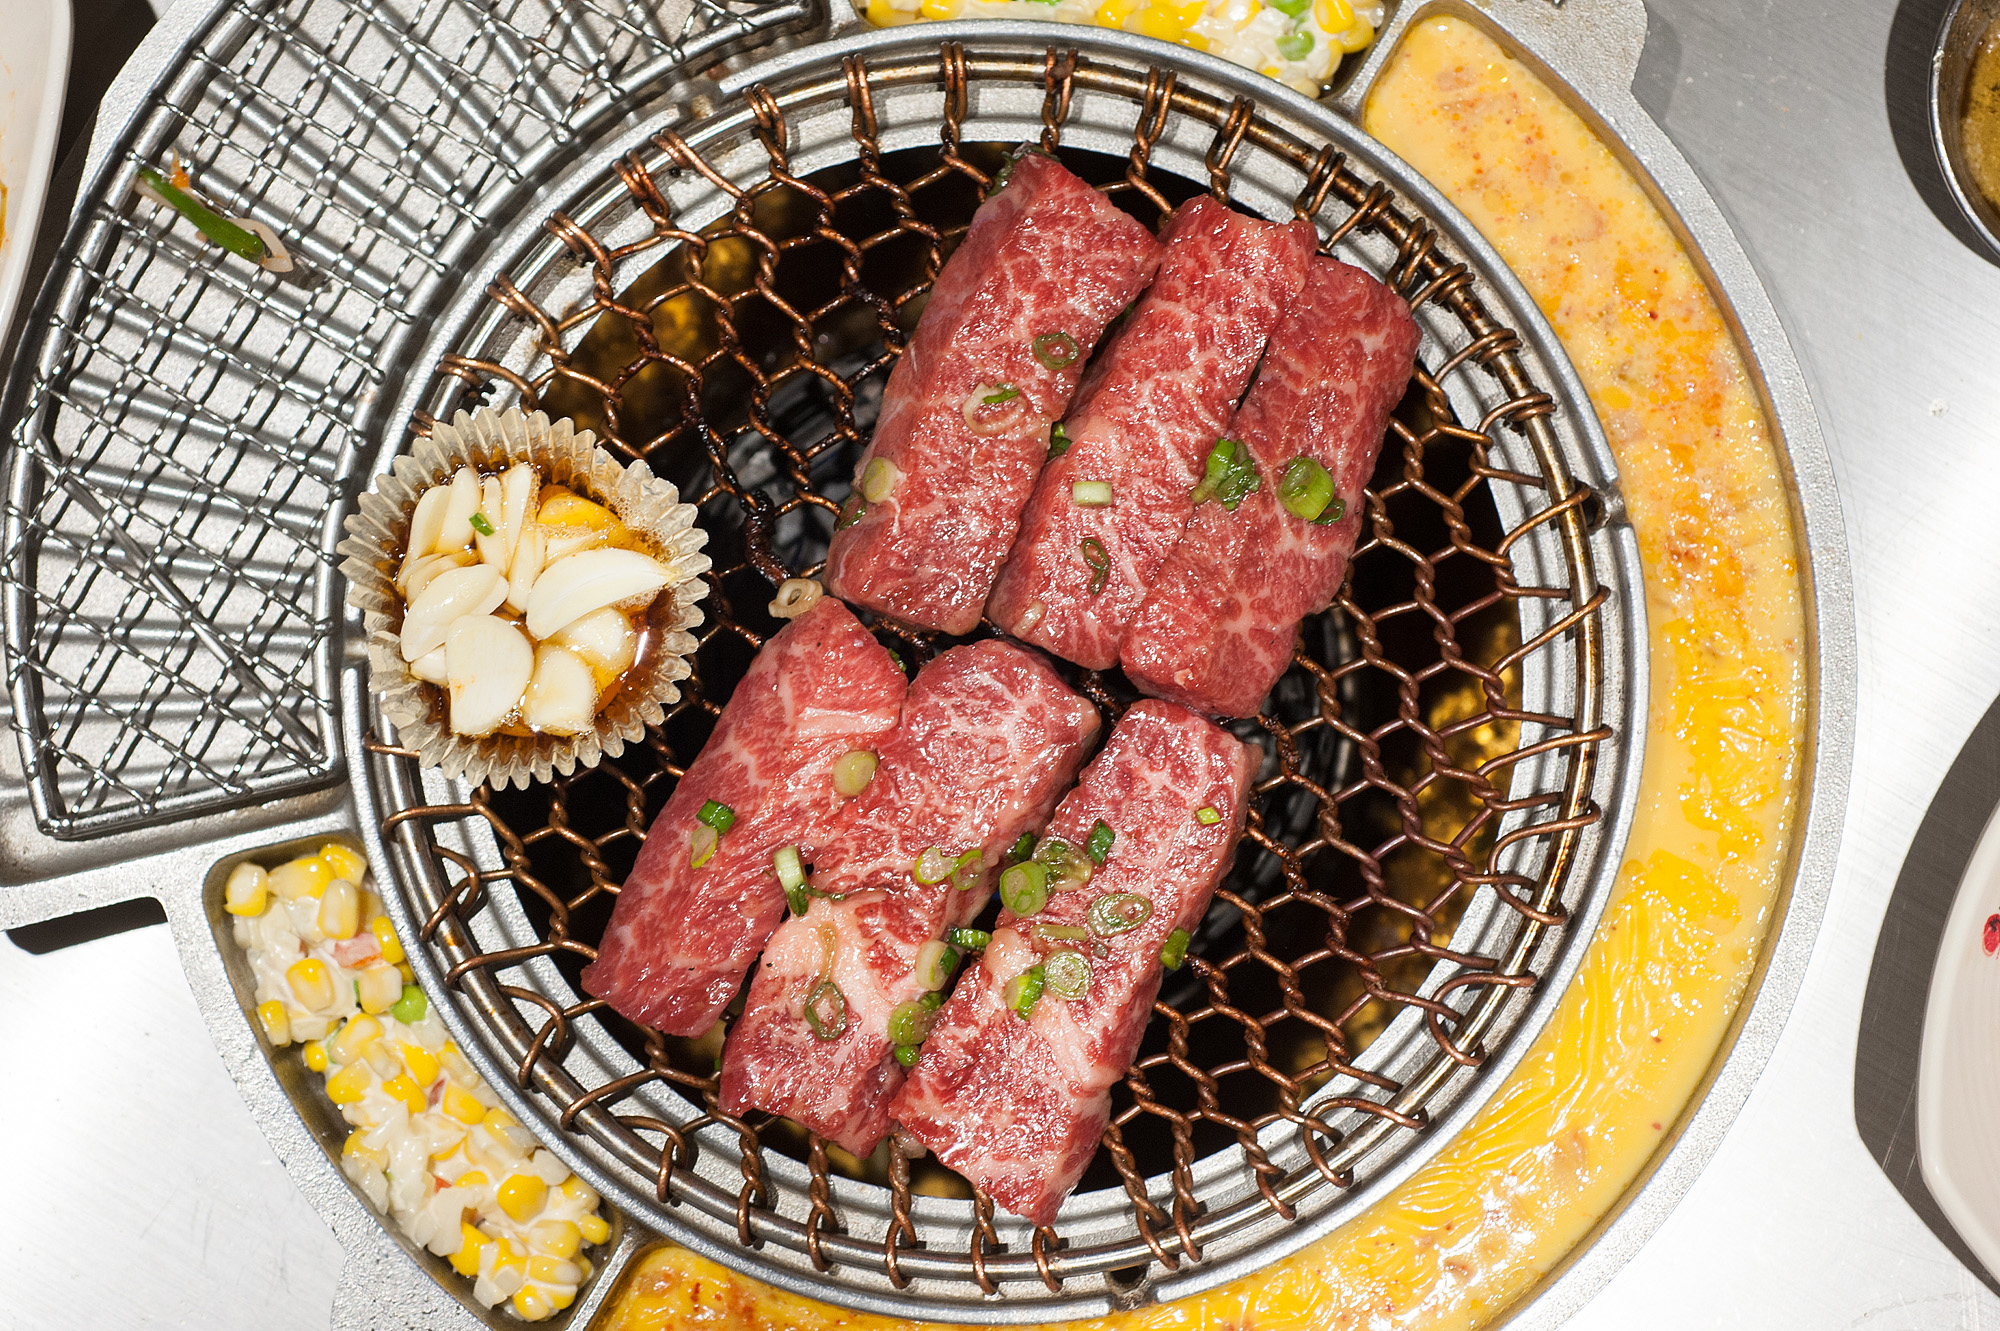 Korean Barbecue in New York City: Where to Eat and What to Order